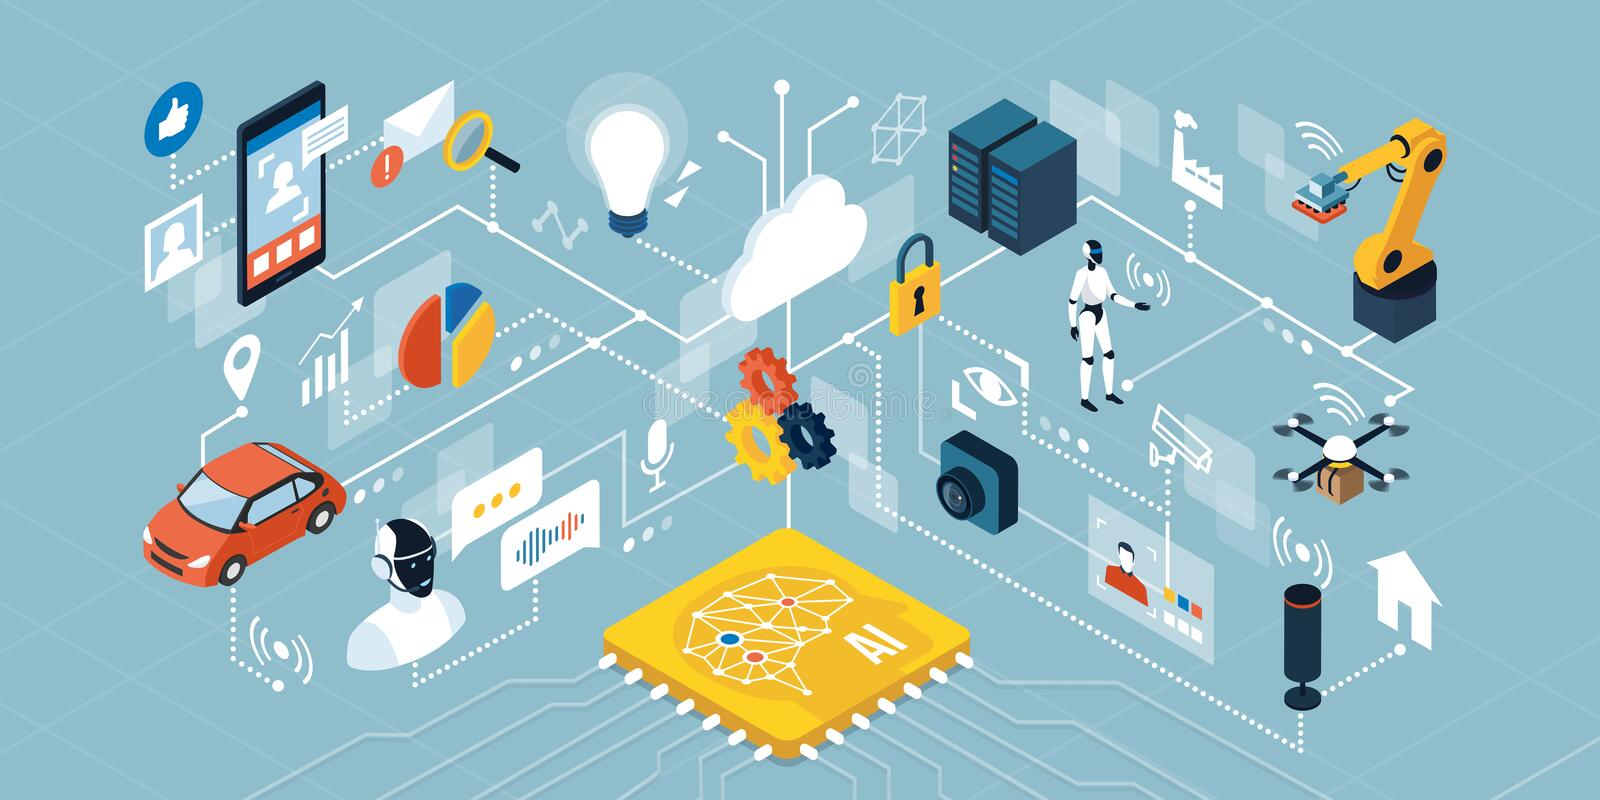 AI, automation and smart devices. Artificial intelligence applications, smart devices, robots and automation: network of isometric objects connecting together royalty free illustration